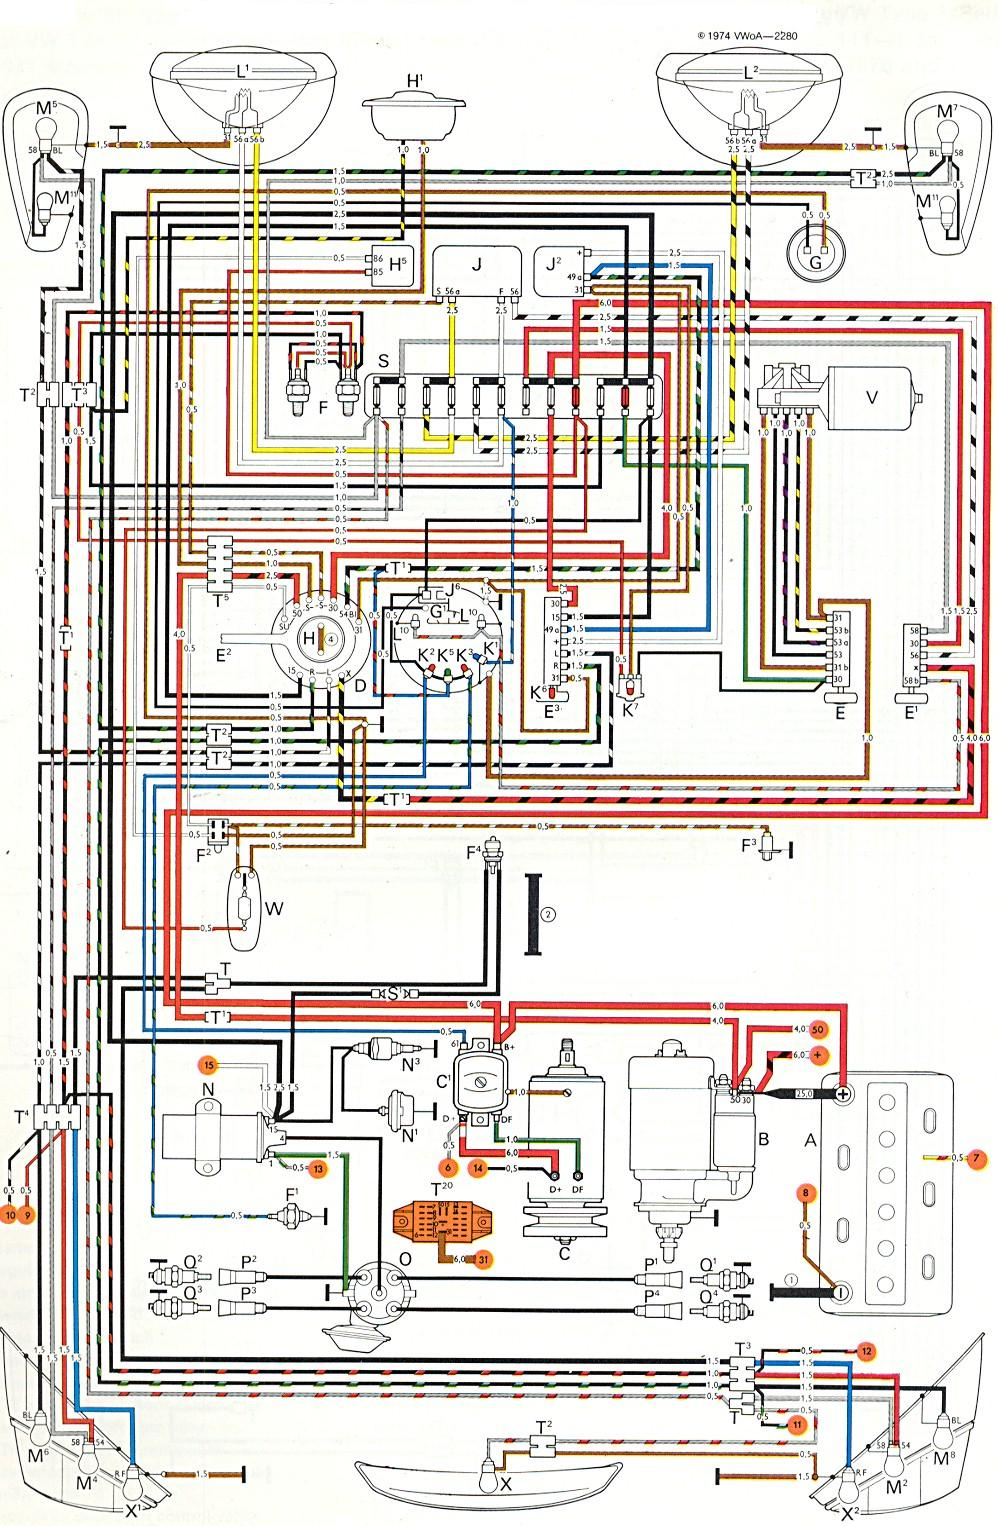 hight resolution of 1958 vw bug wiring diagram wiring schematic data 2001 volkswagen beetle wiring diagram 1976 vw beetle